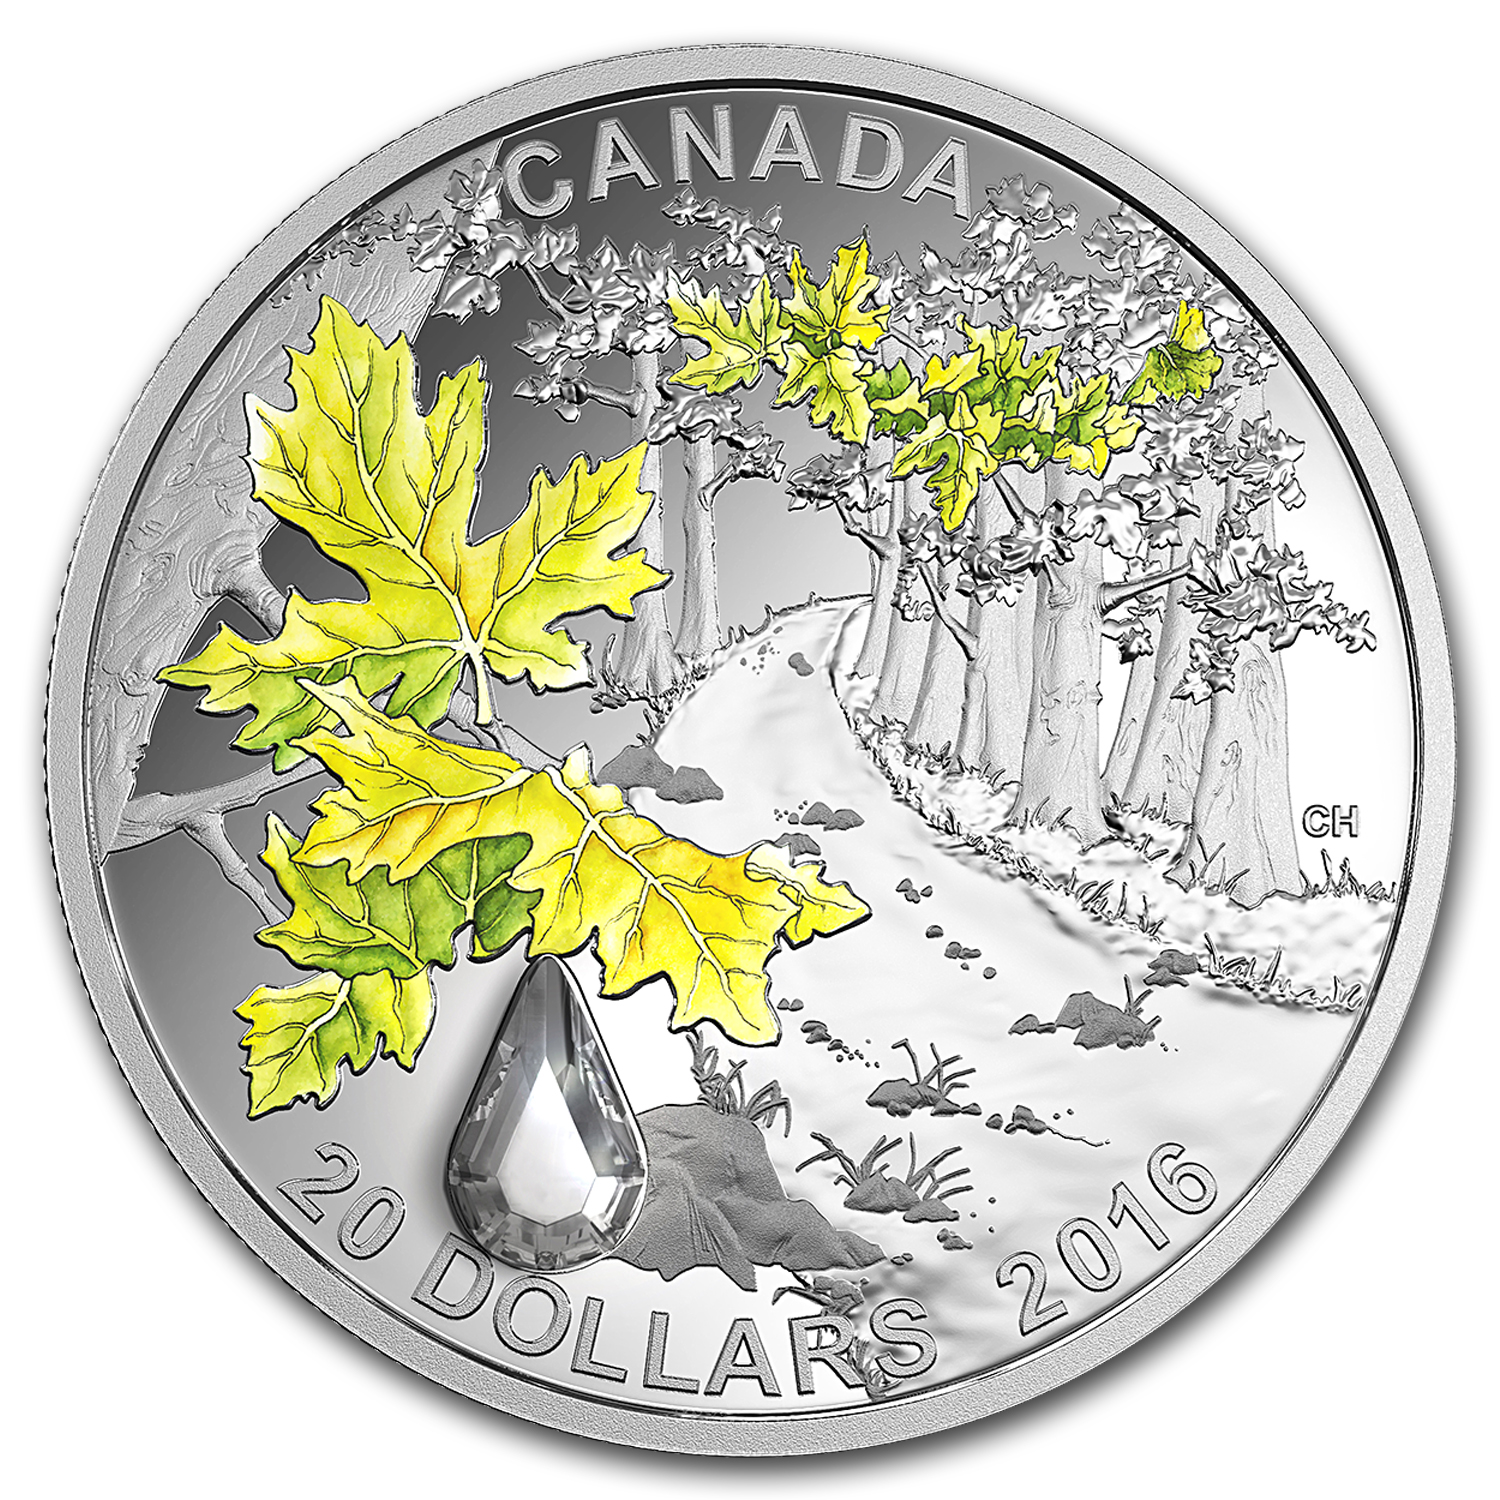 2016 Canada 1 oz Silver $20 Jewel of the Rain: Bigleaf Maple